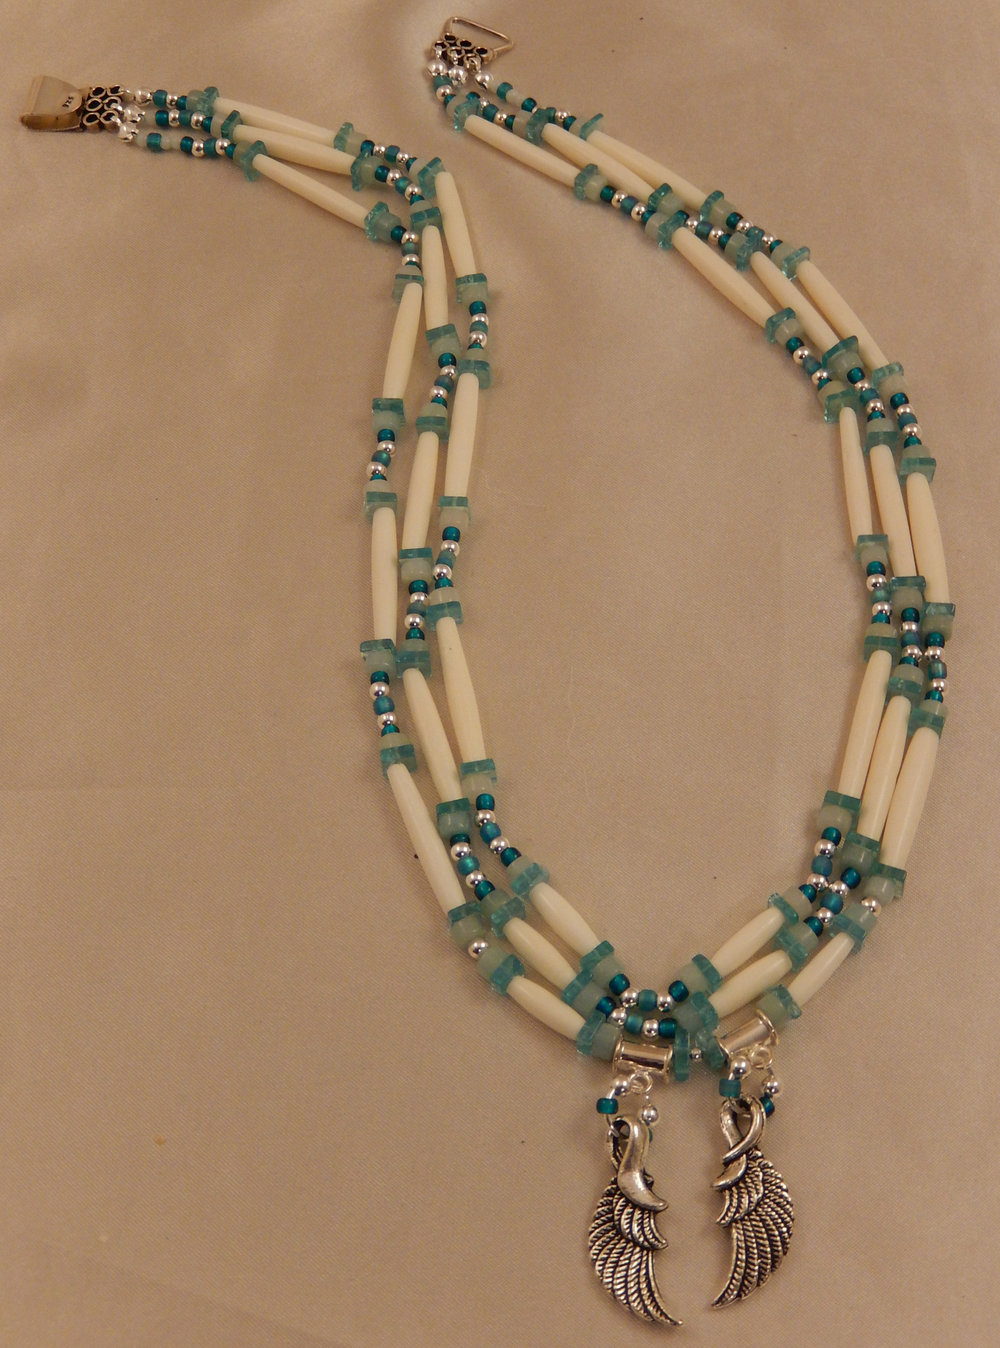 White hairpipe bone and sterling silver necklace with apatite and amazonite gemstones.